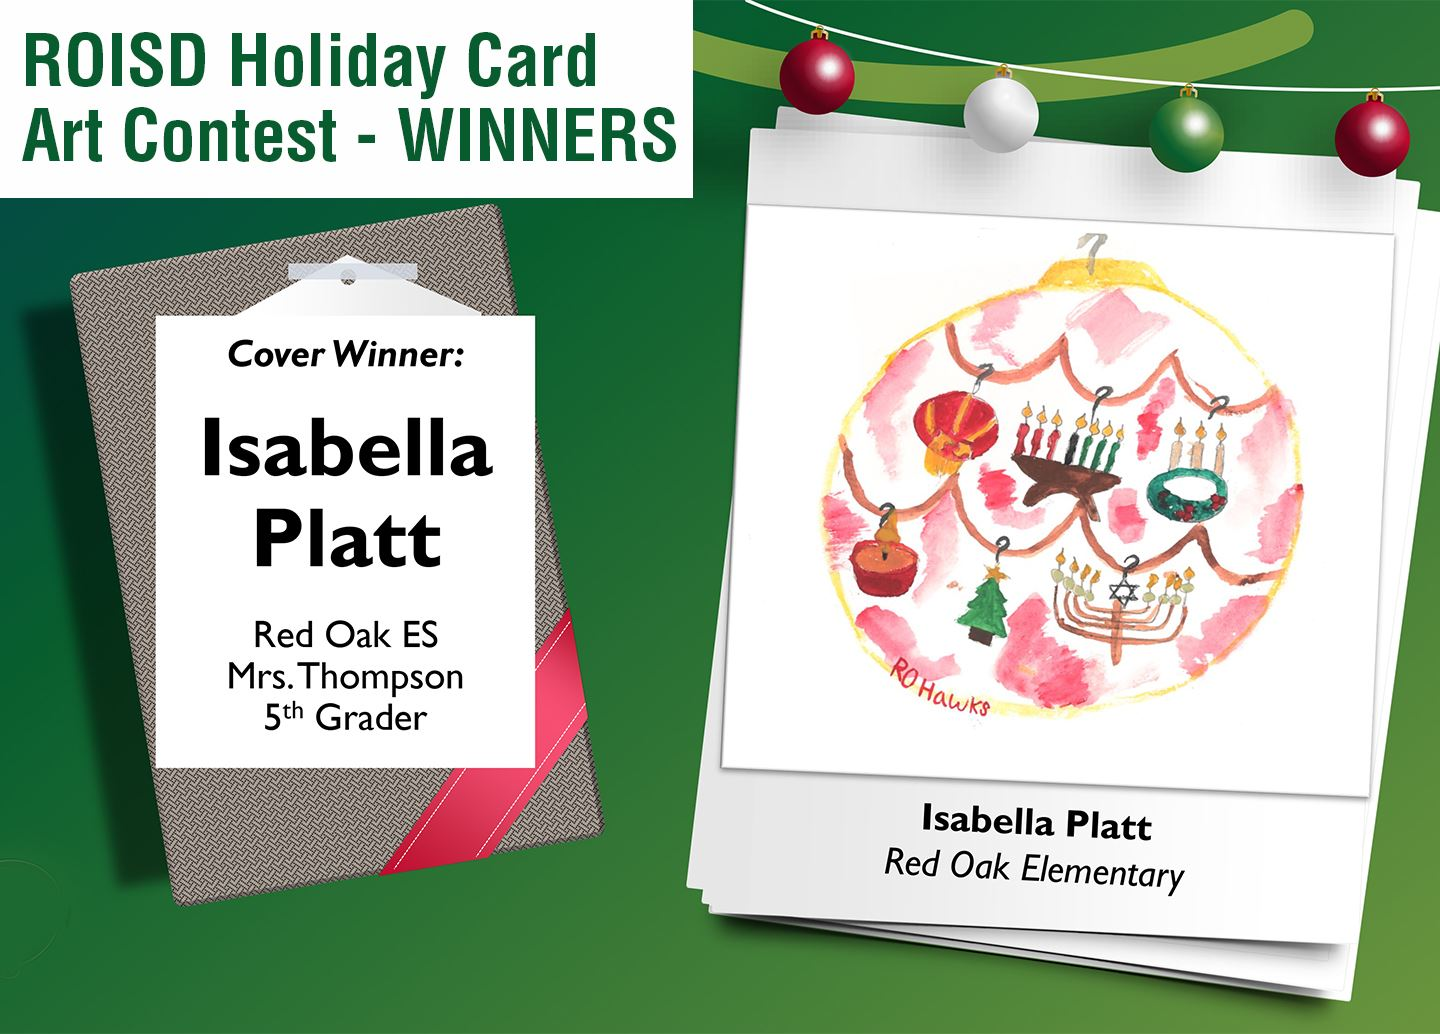 ROISD Holiday Card Art Contest Winner-Isabella Pratt from Red Oak Elementary